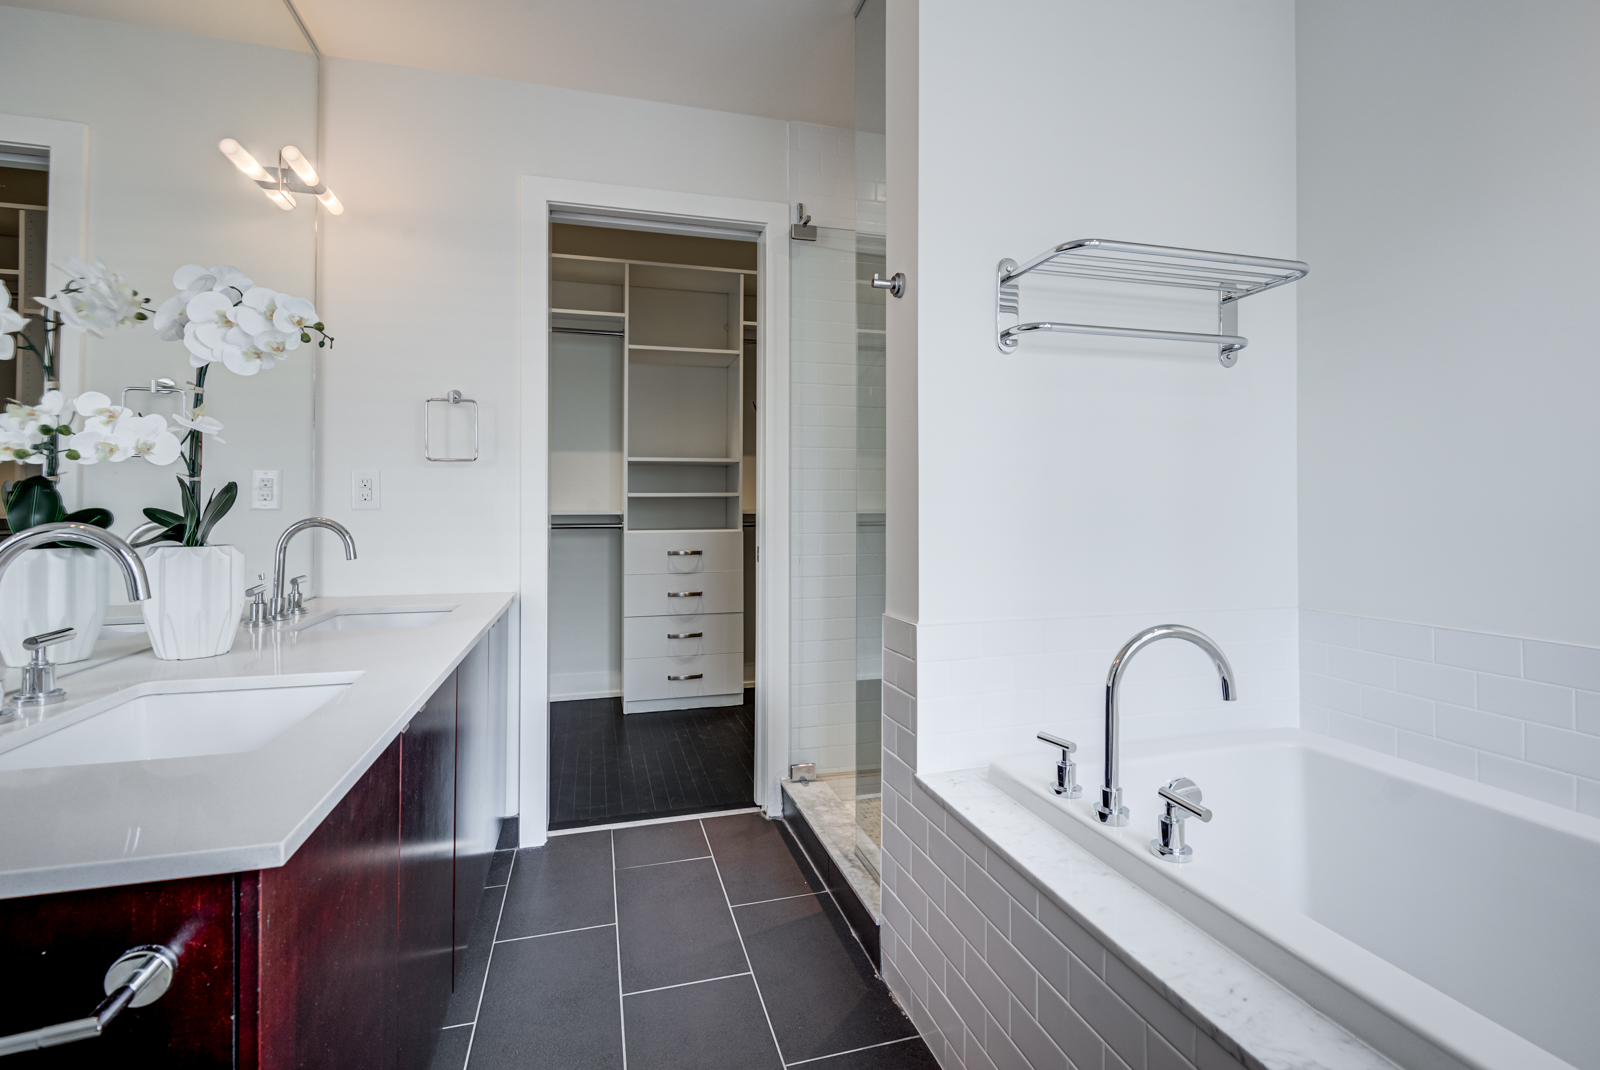 master bath with his and her sinks, soaker tub and black floor tiles.